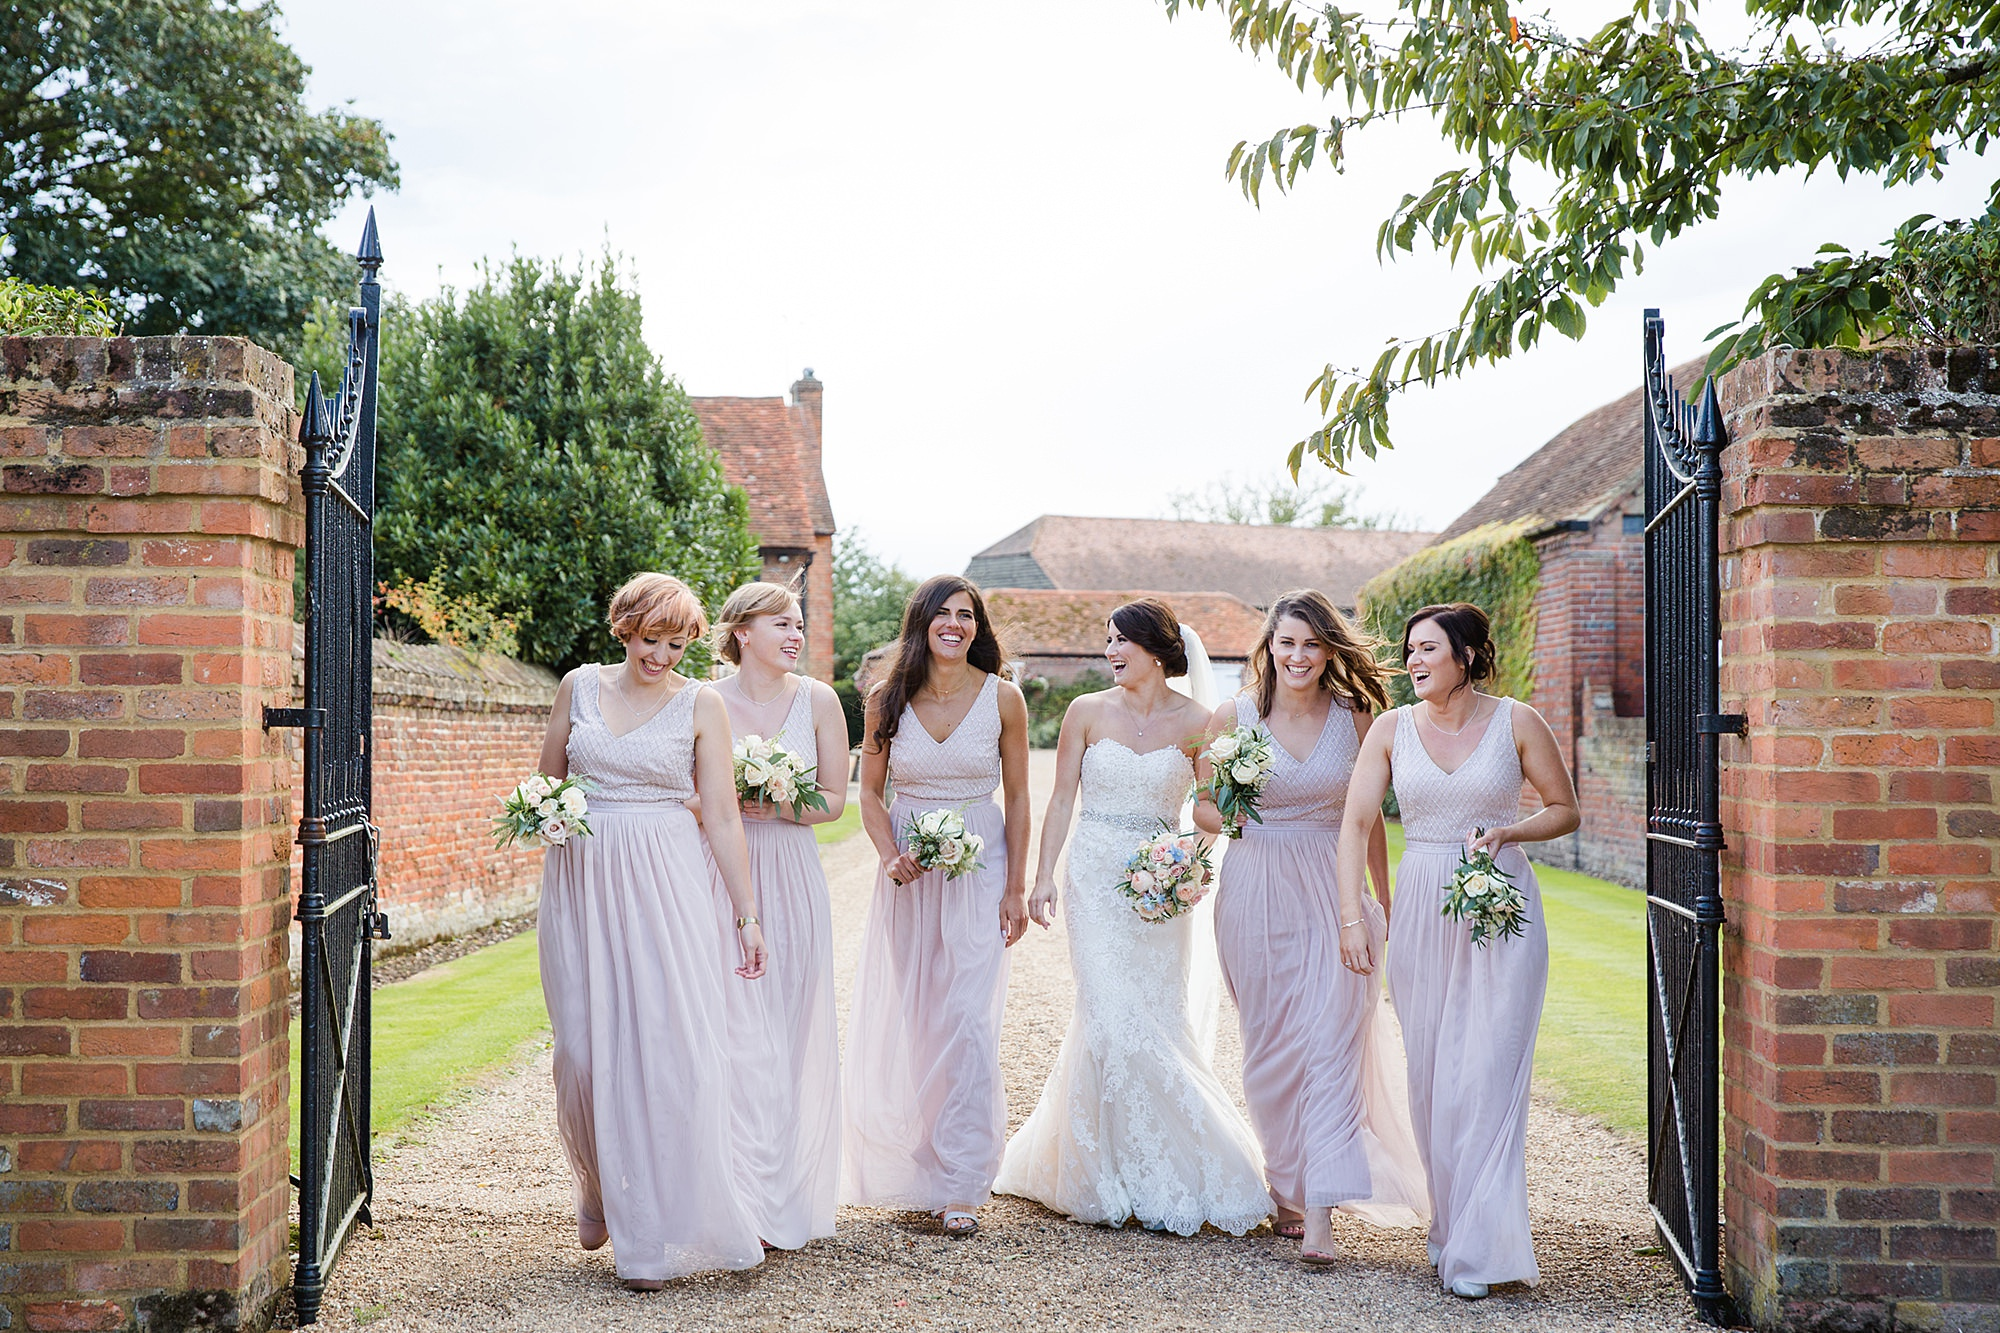 Lillibrooke Manor wedding bride and bridesmaids laugh and walk together